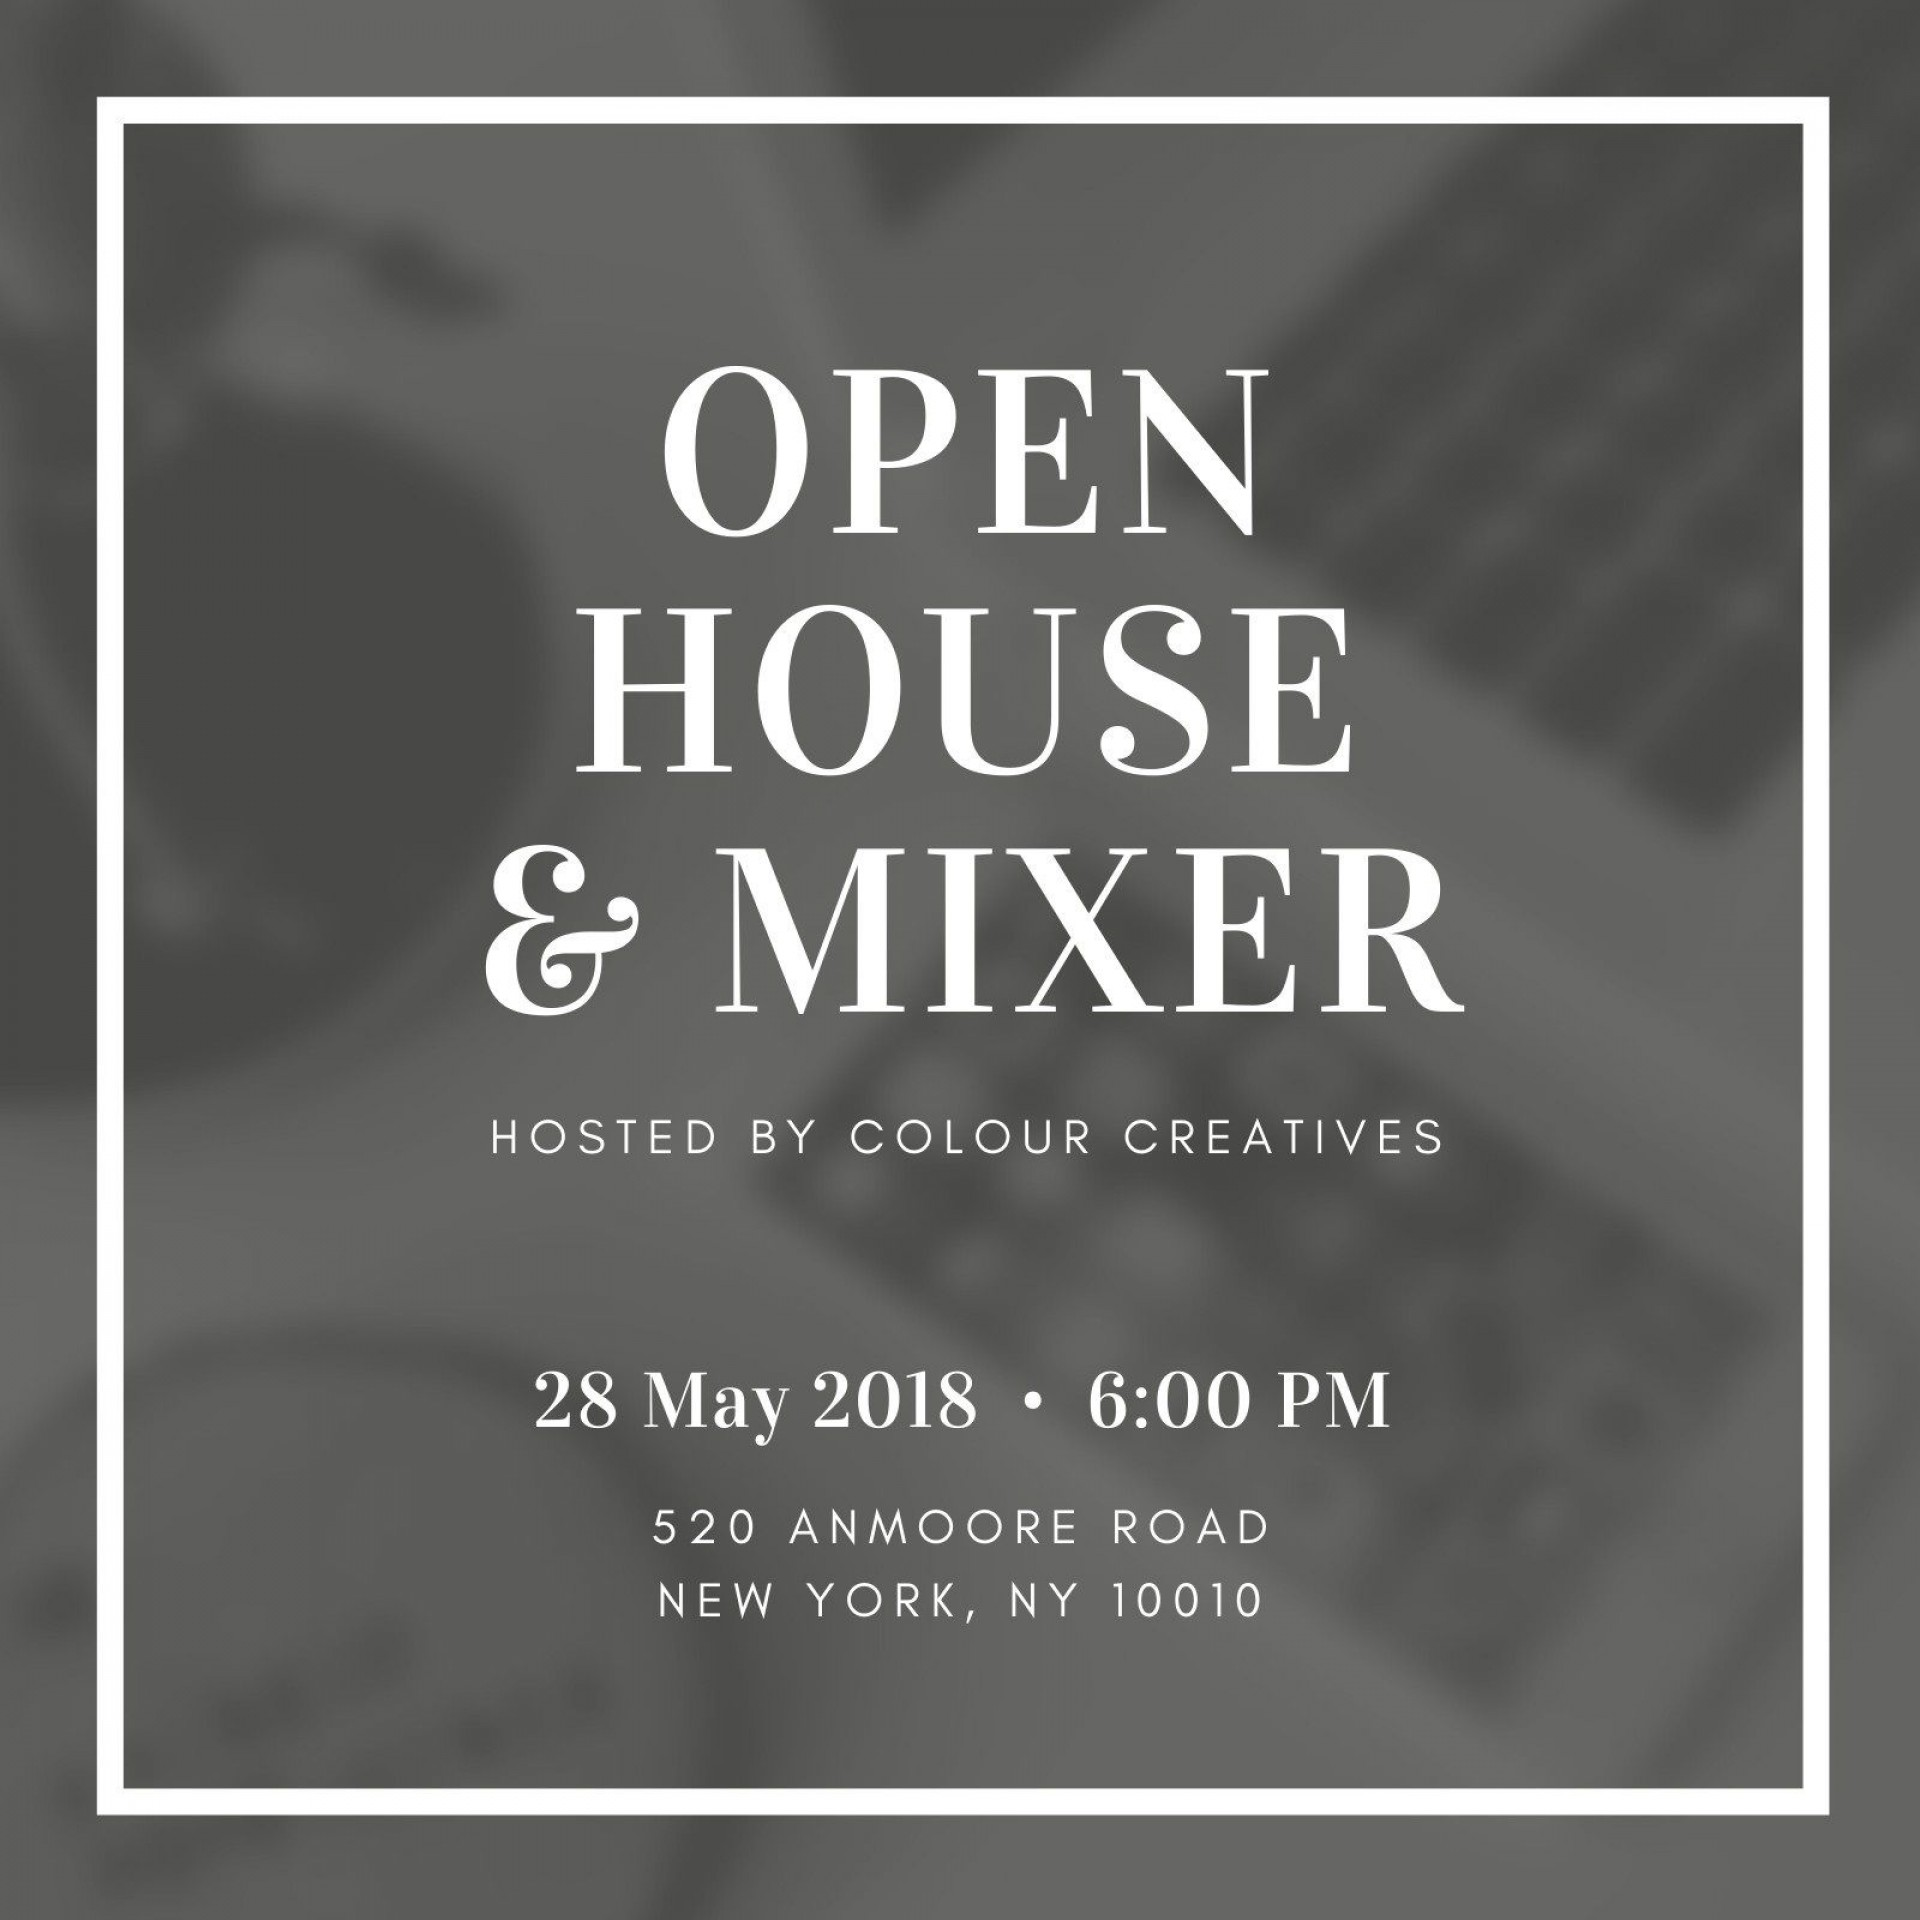 009 Magnificent Open House Invitation Template High Def  Templates Free Printable Busines1920